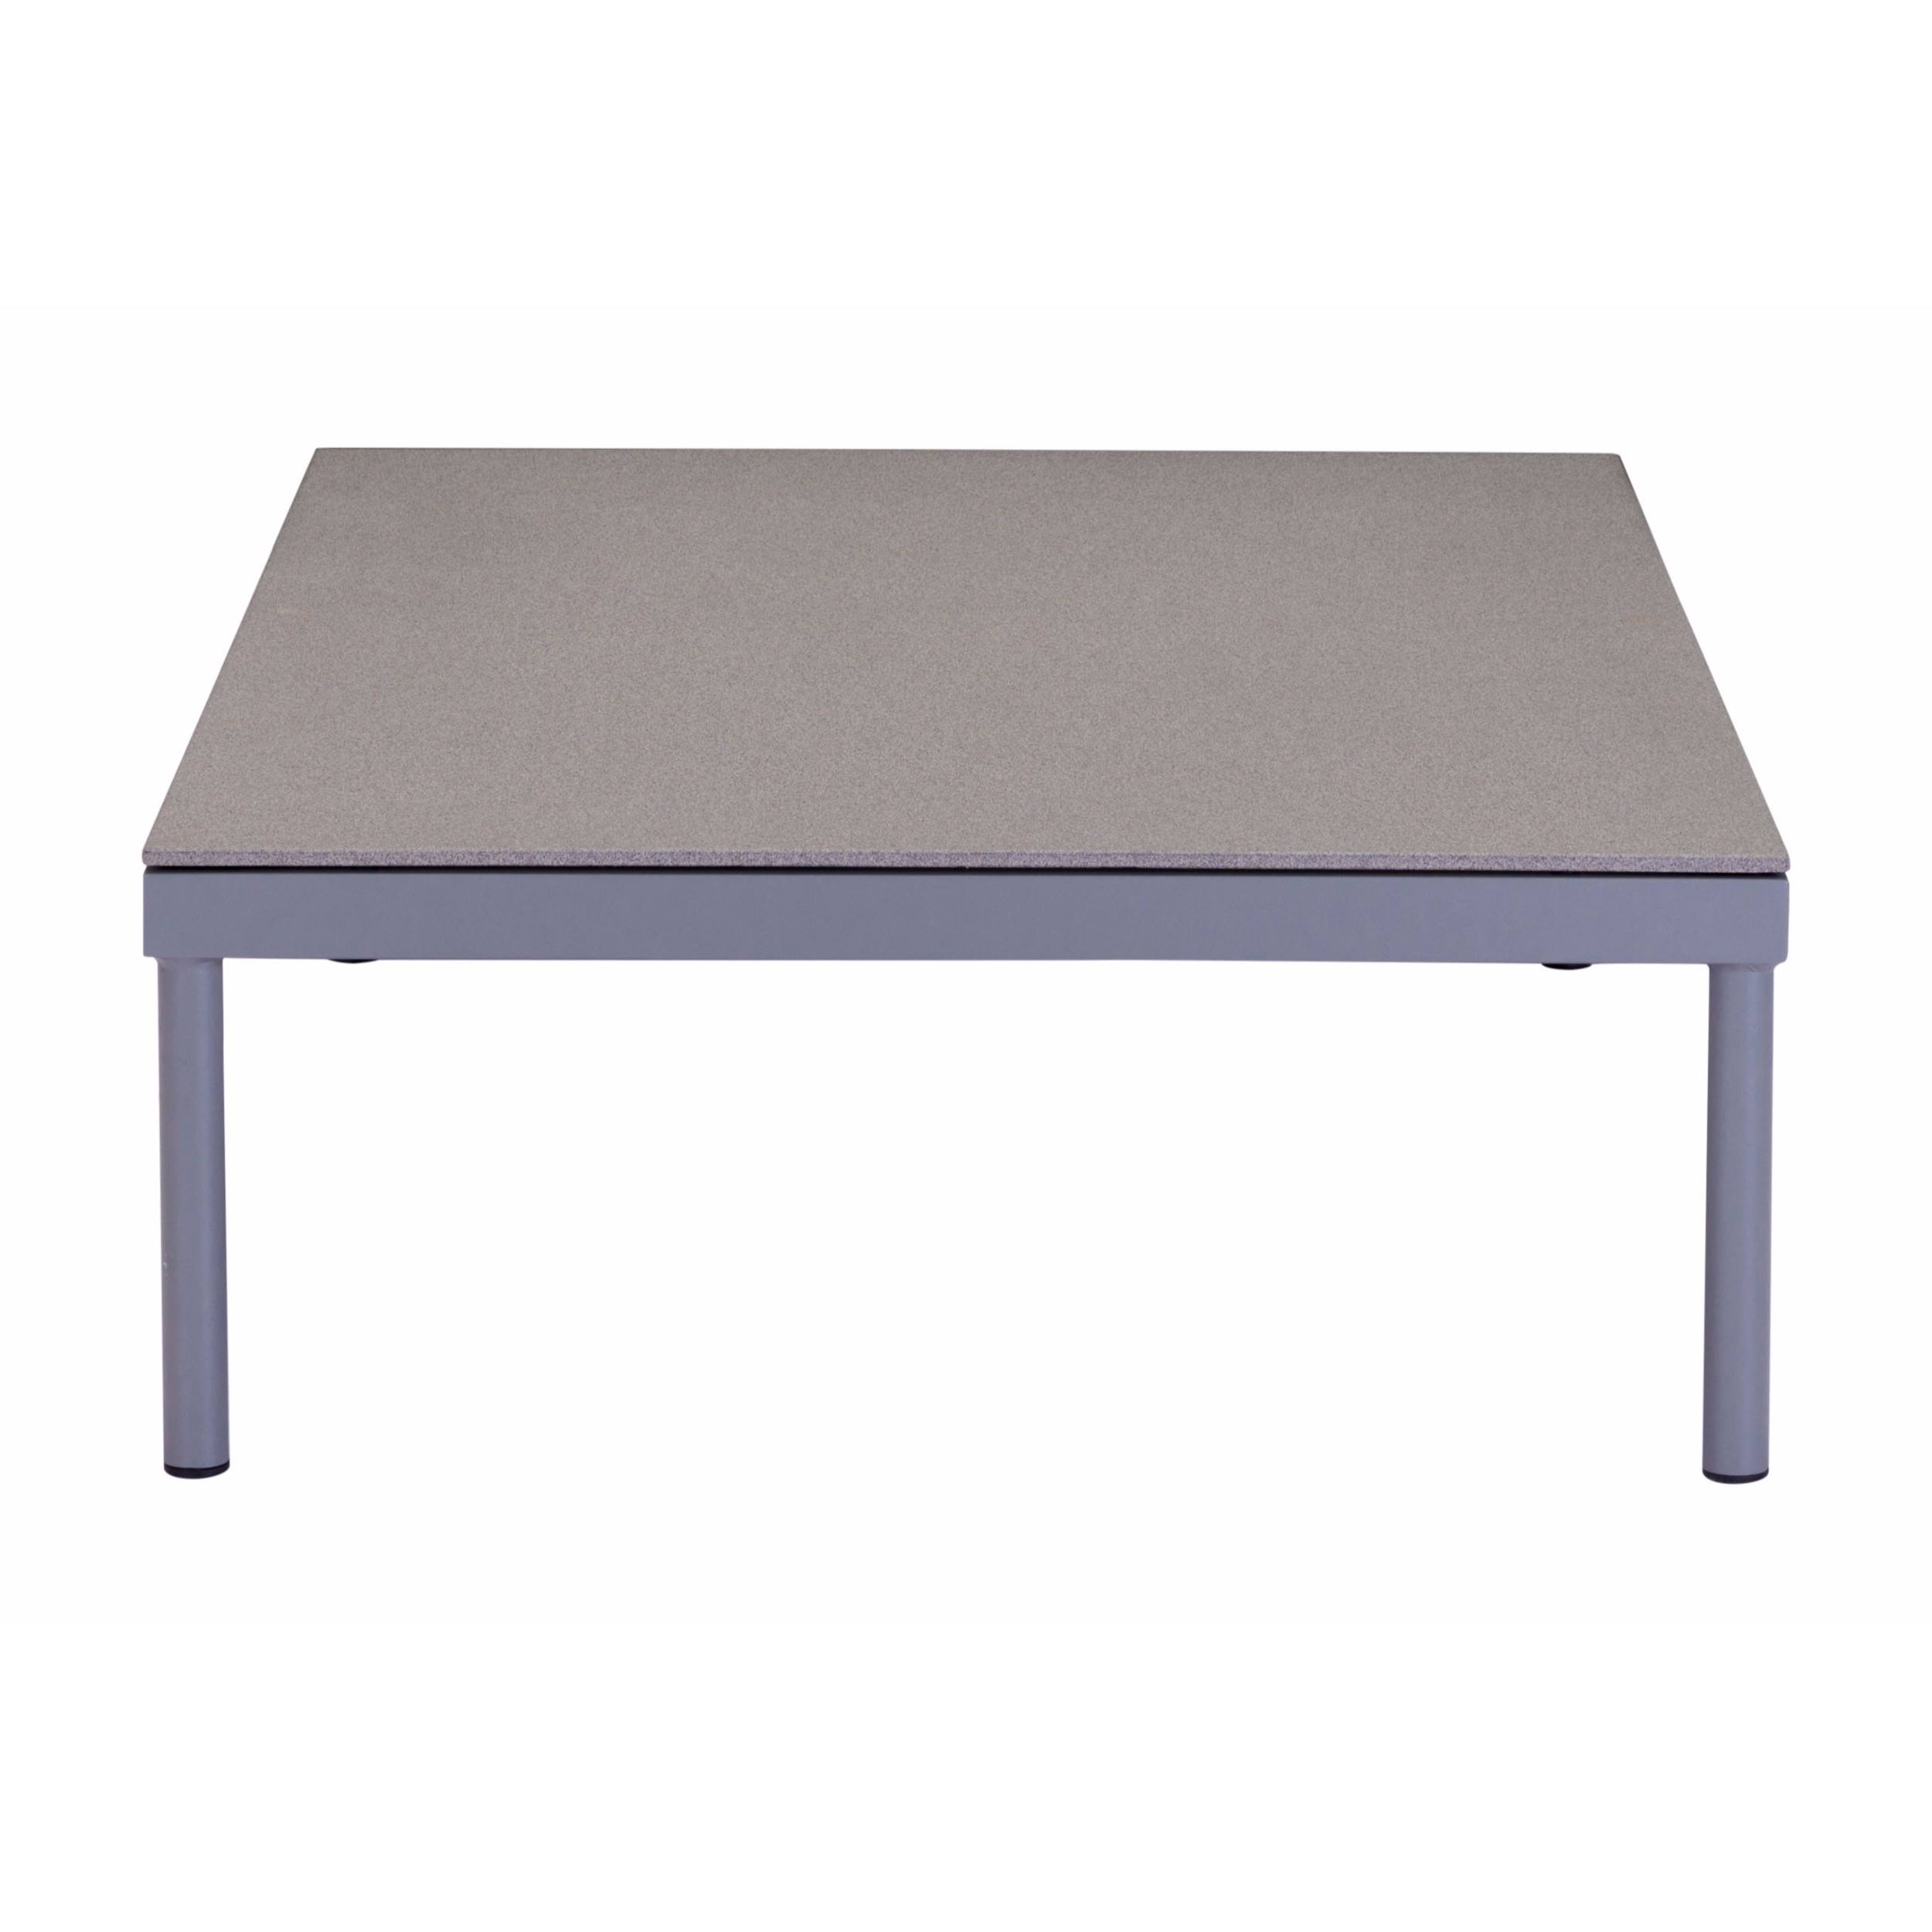 sand beach outdoor coffee table gray accent tables furniture seater dining cover desk lamps clear end blue and white oriental metal marble side contemporary bedside unique ideas